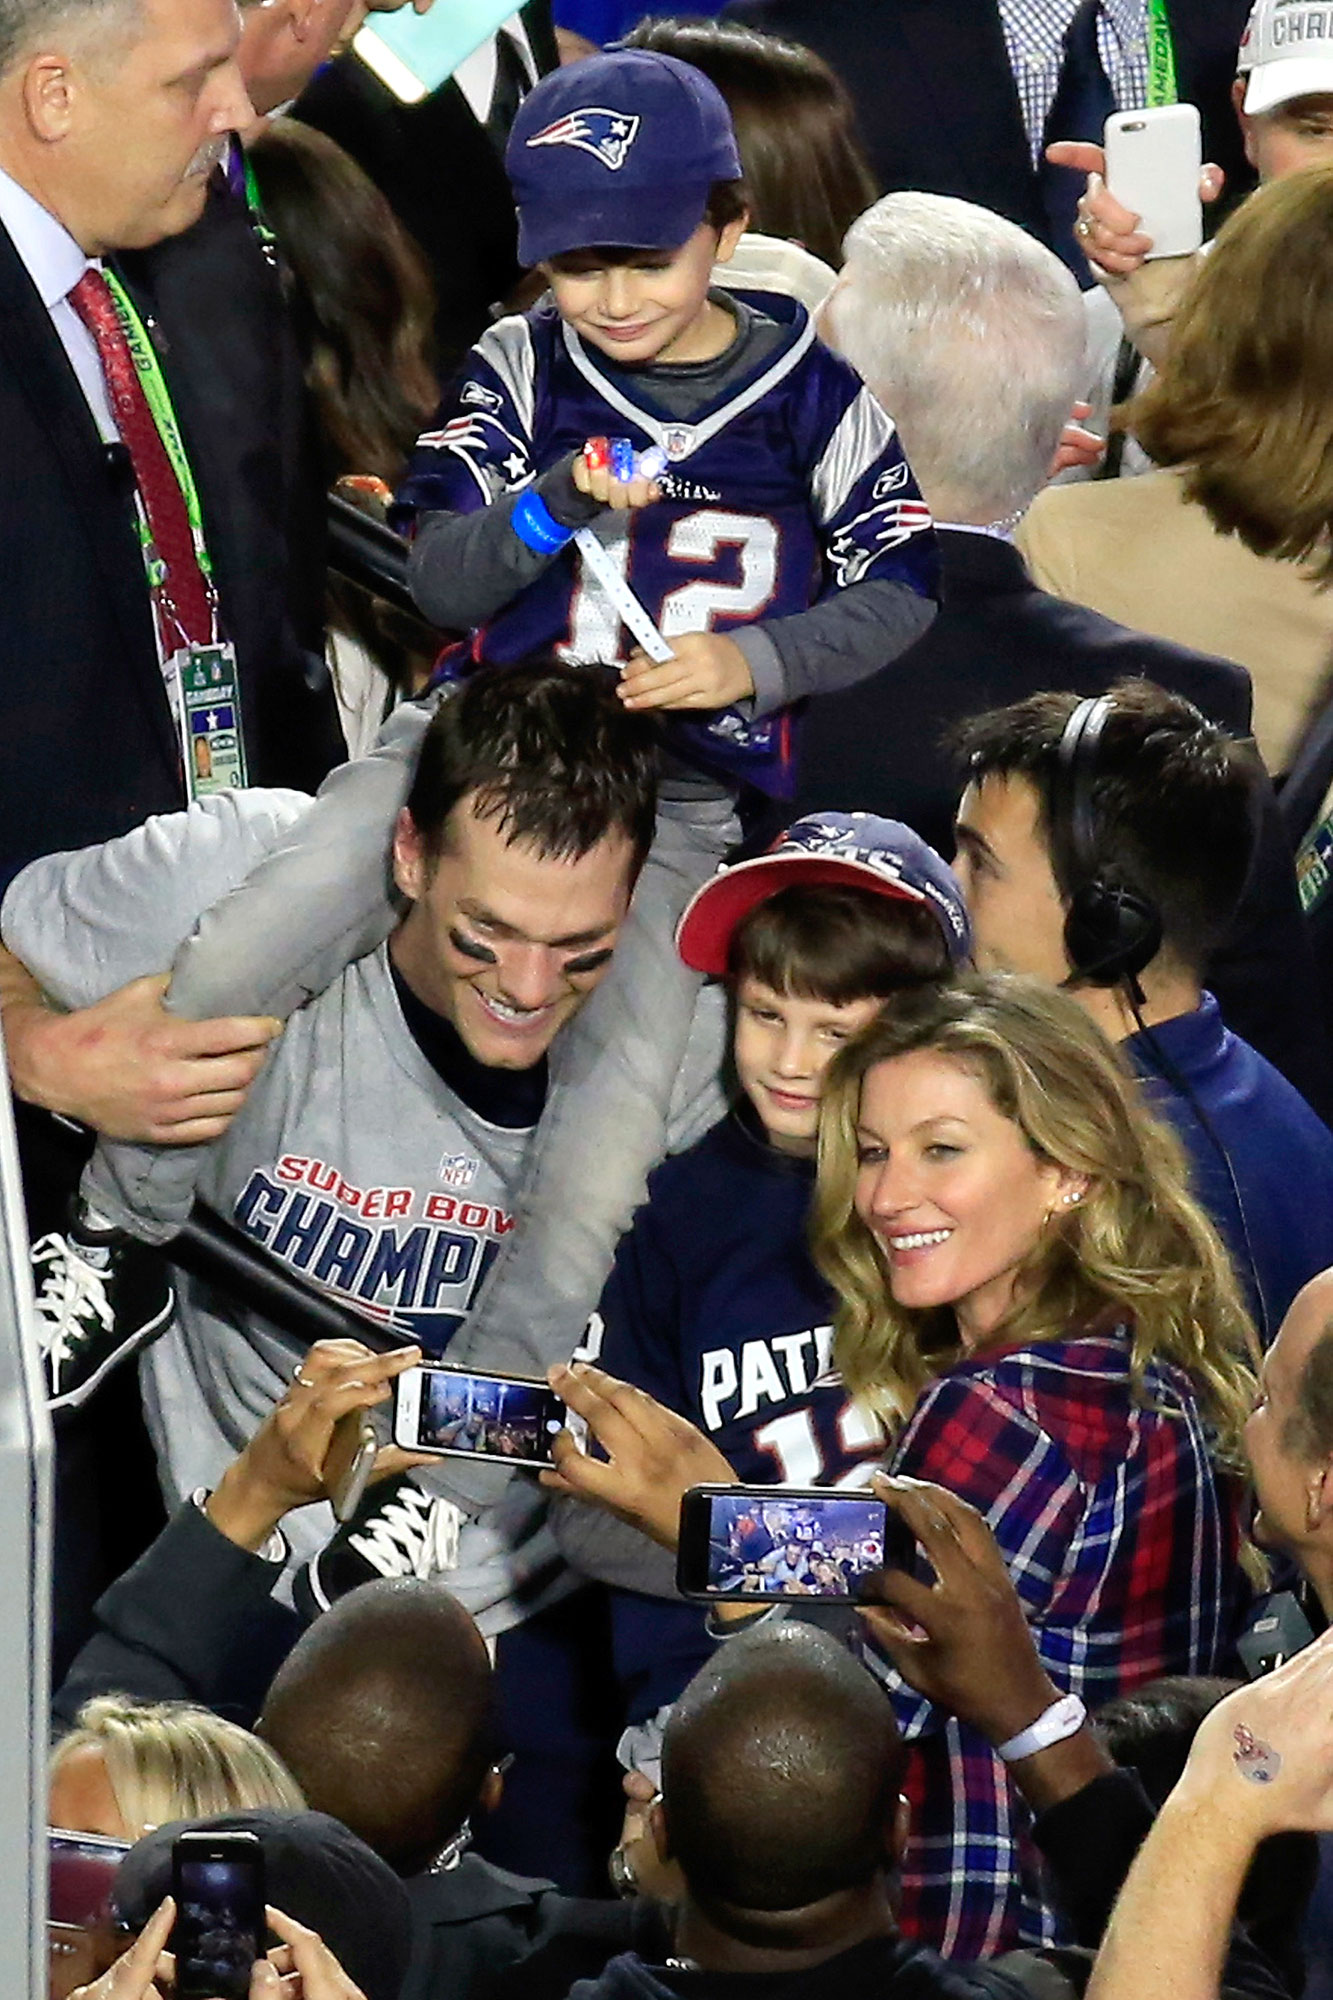 Gisele-Bundchen-Celebs-Who-Love-Football - While it's unclear whether the model was a football fan before she took up with husband Brady, she's been a sideline staple at the New England Patriots' quarterback's games since 2007. In fact, as she revealed to the Associated Press in 2014, she only has eyes for her man on the field .